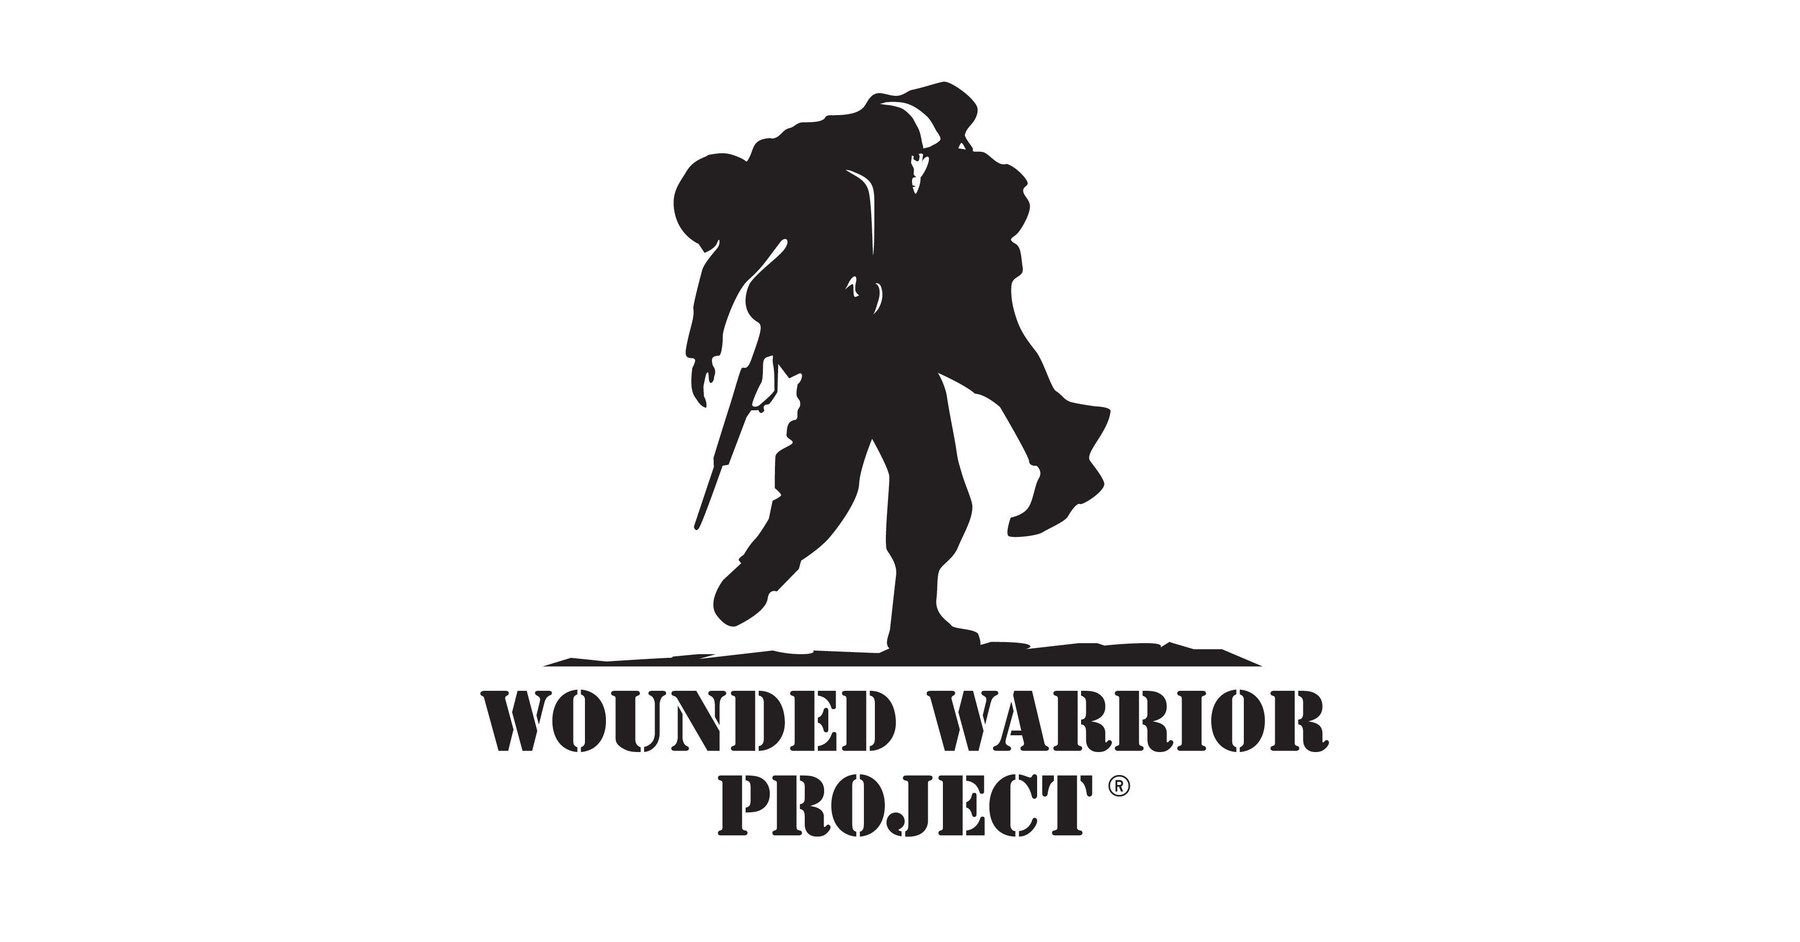 the wounded warrior project Show your support for america's heroes by wearing wounded warrior project® survival straps® products the men and women of our armed services all make incredible sacrifices to keep us free and safe.